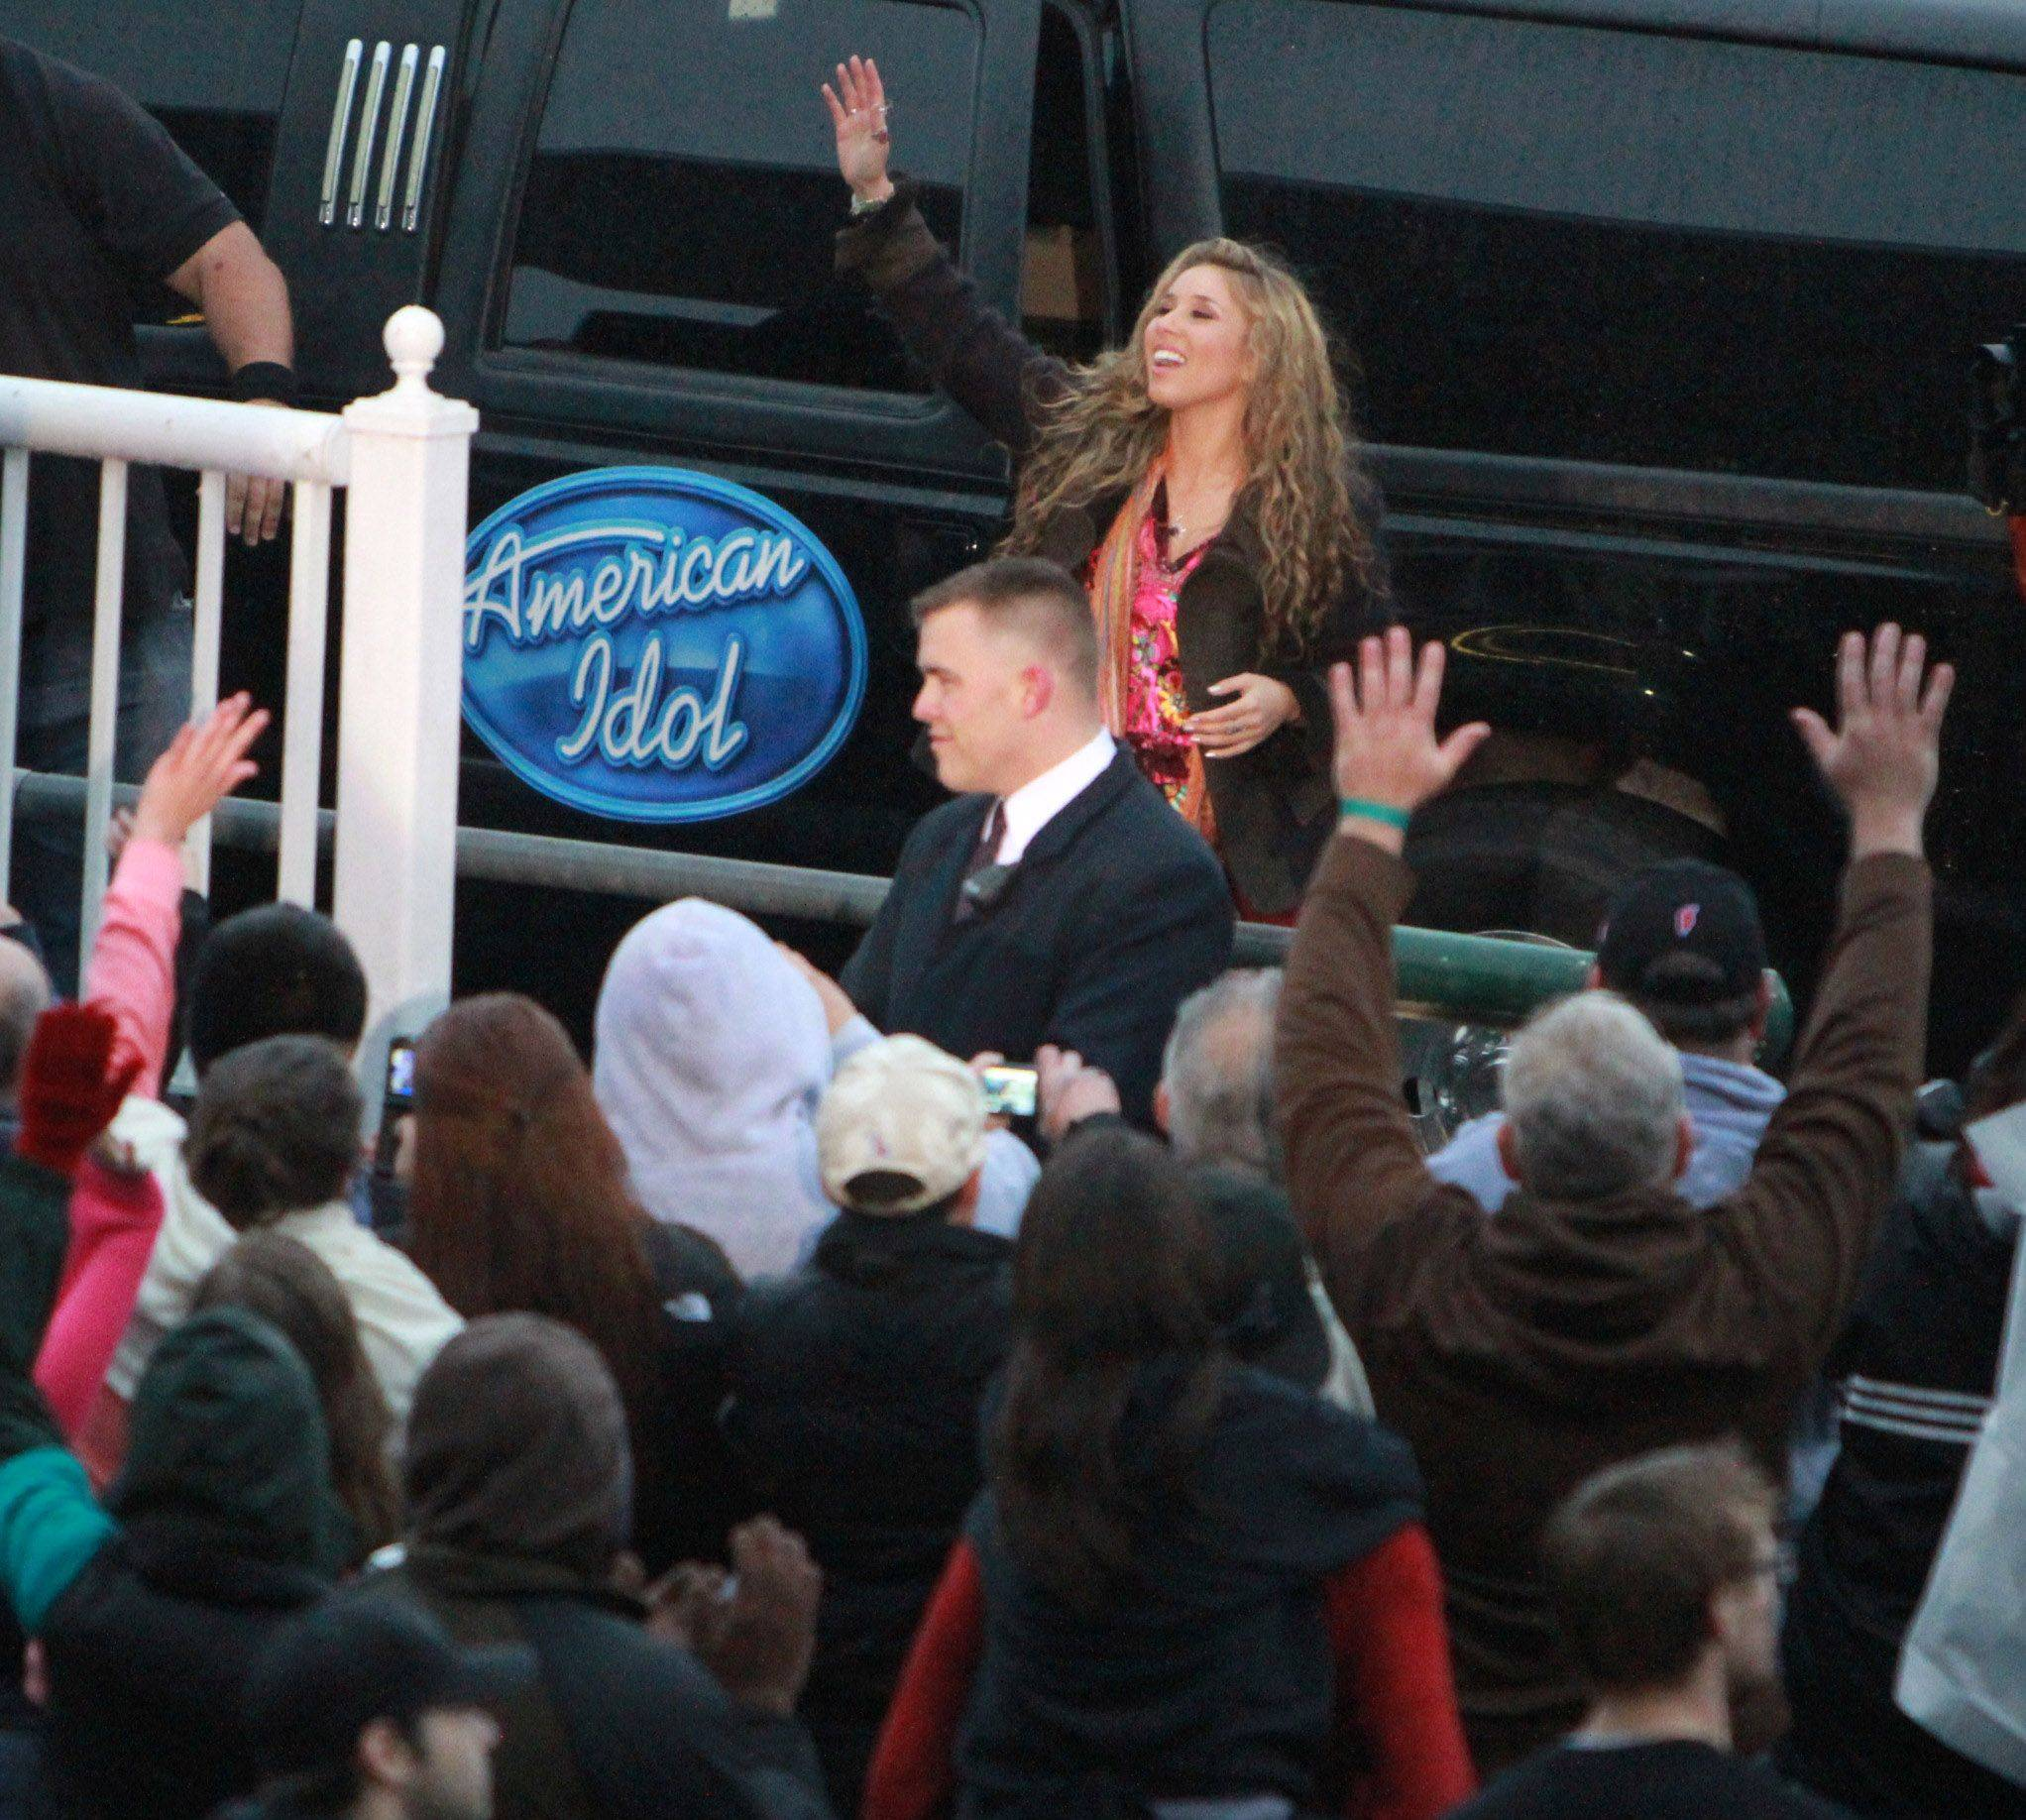 American Idol finalist Haley Reinhart arrives at Arlington Park on Saturday.